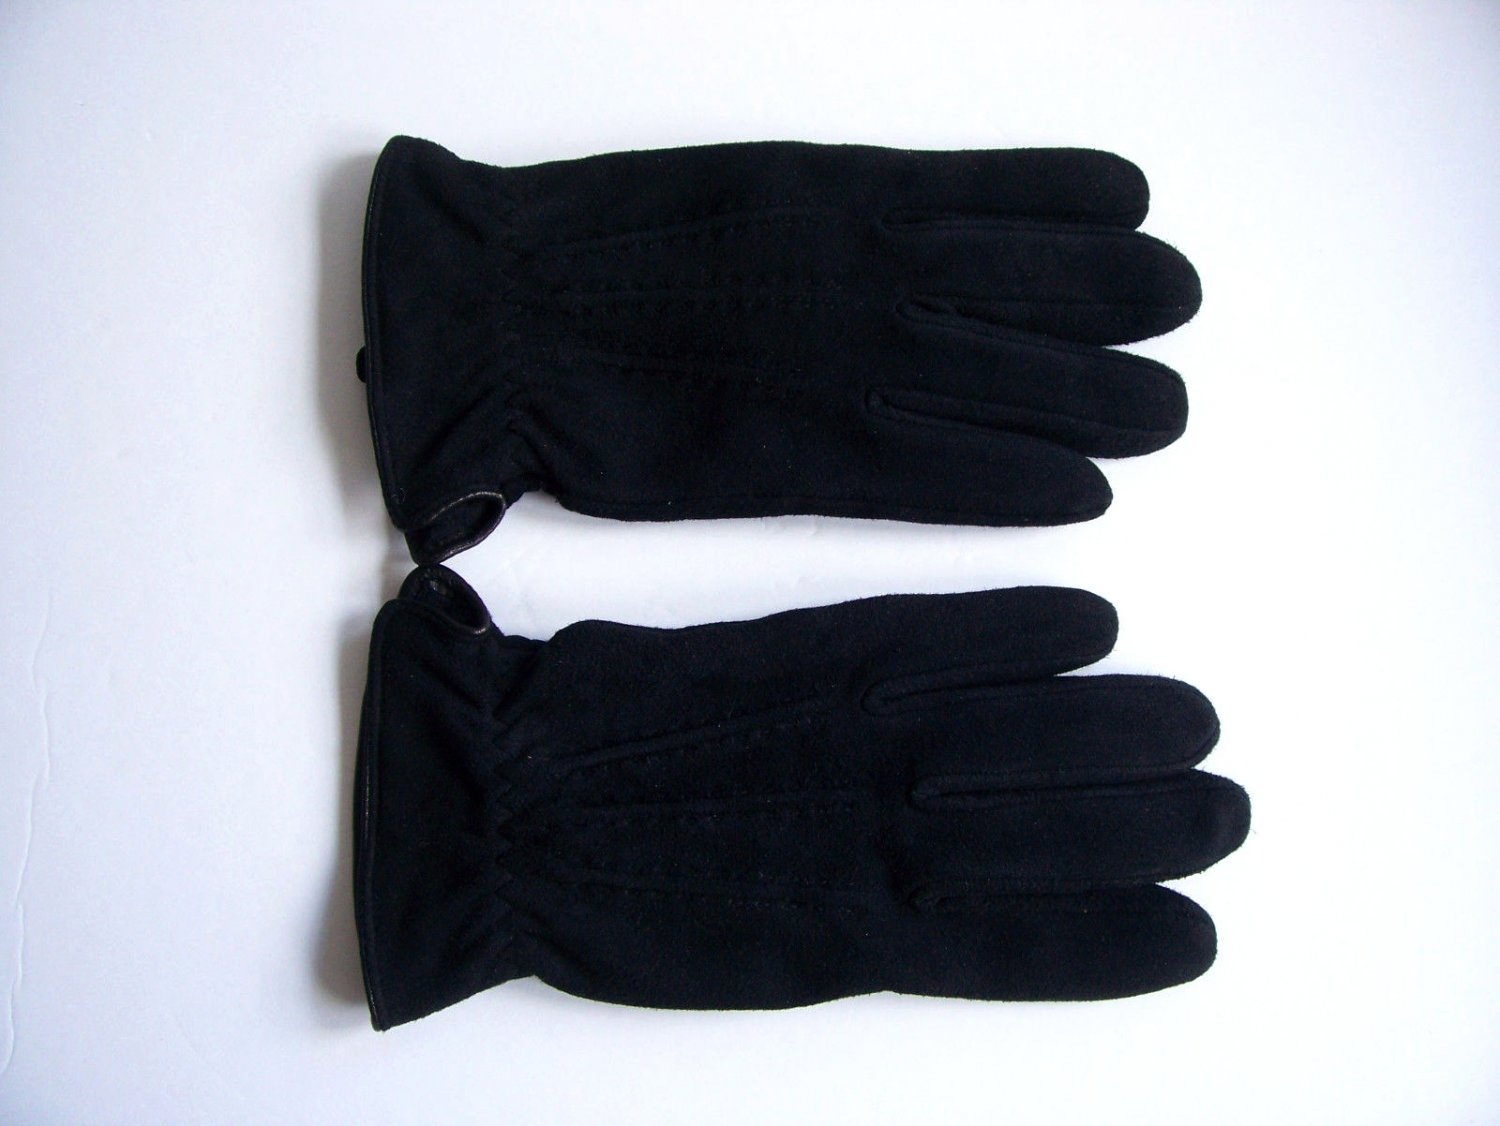 Bay Area Traders Mens Thinsulate Soft Suede Leather Gloves Black X-Large NEW